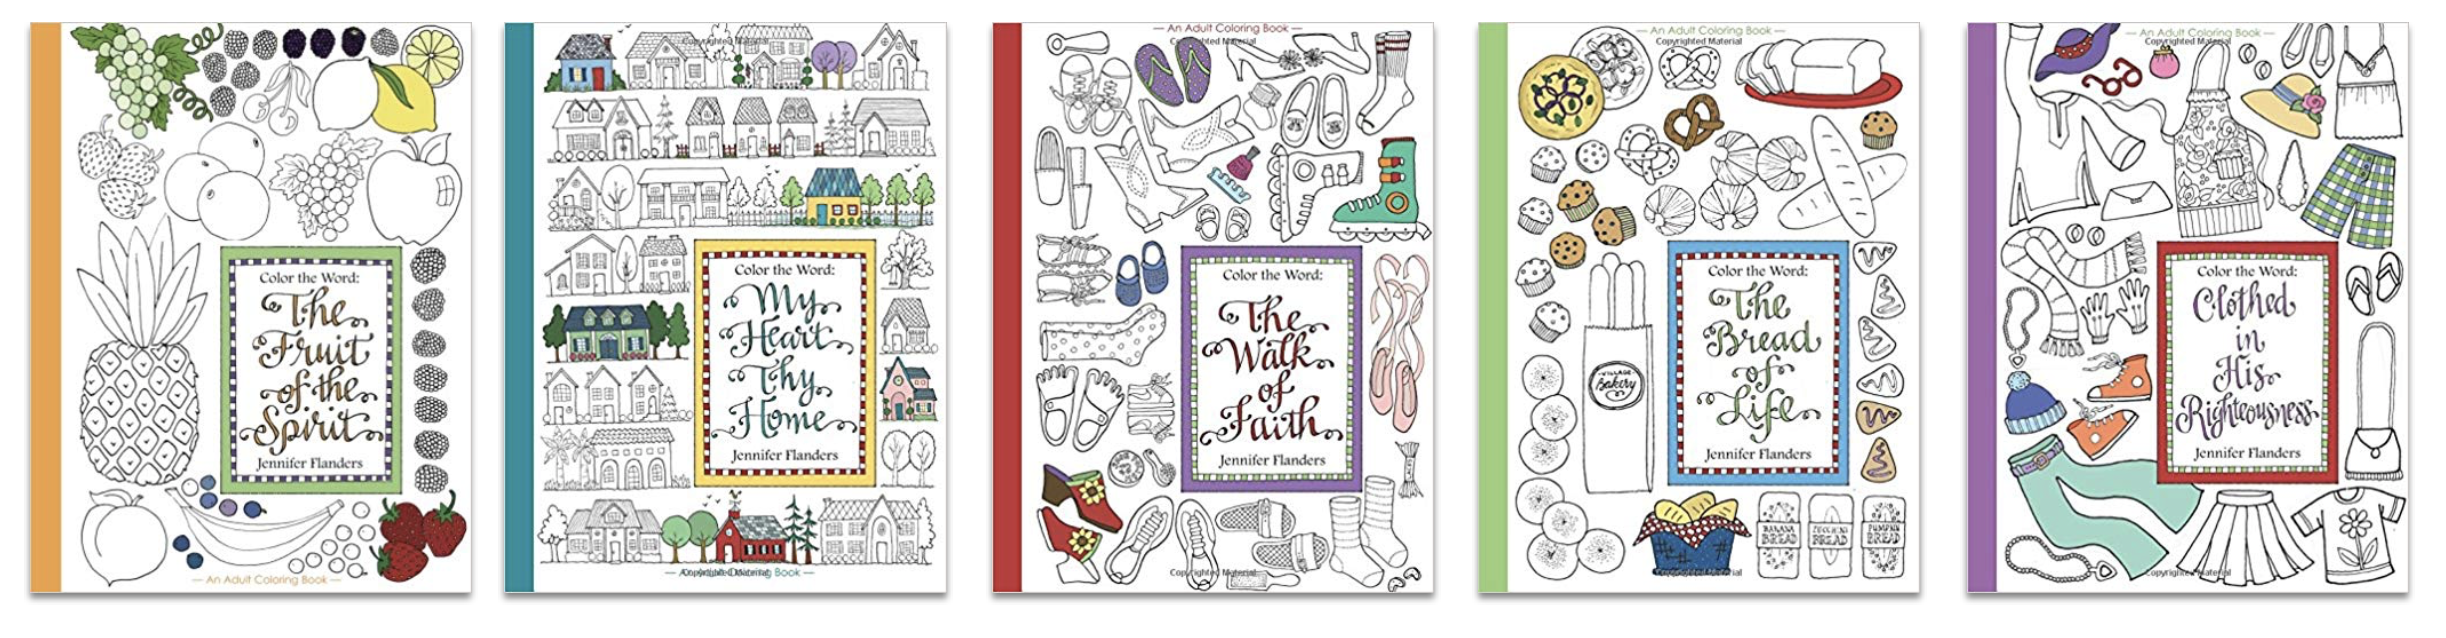 Color the Word Coloring Books by Jennifer Flanders